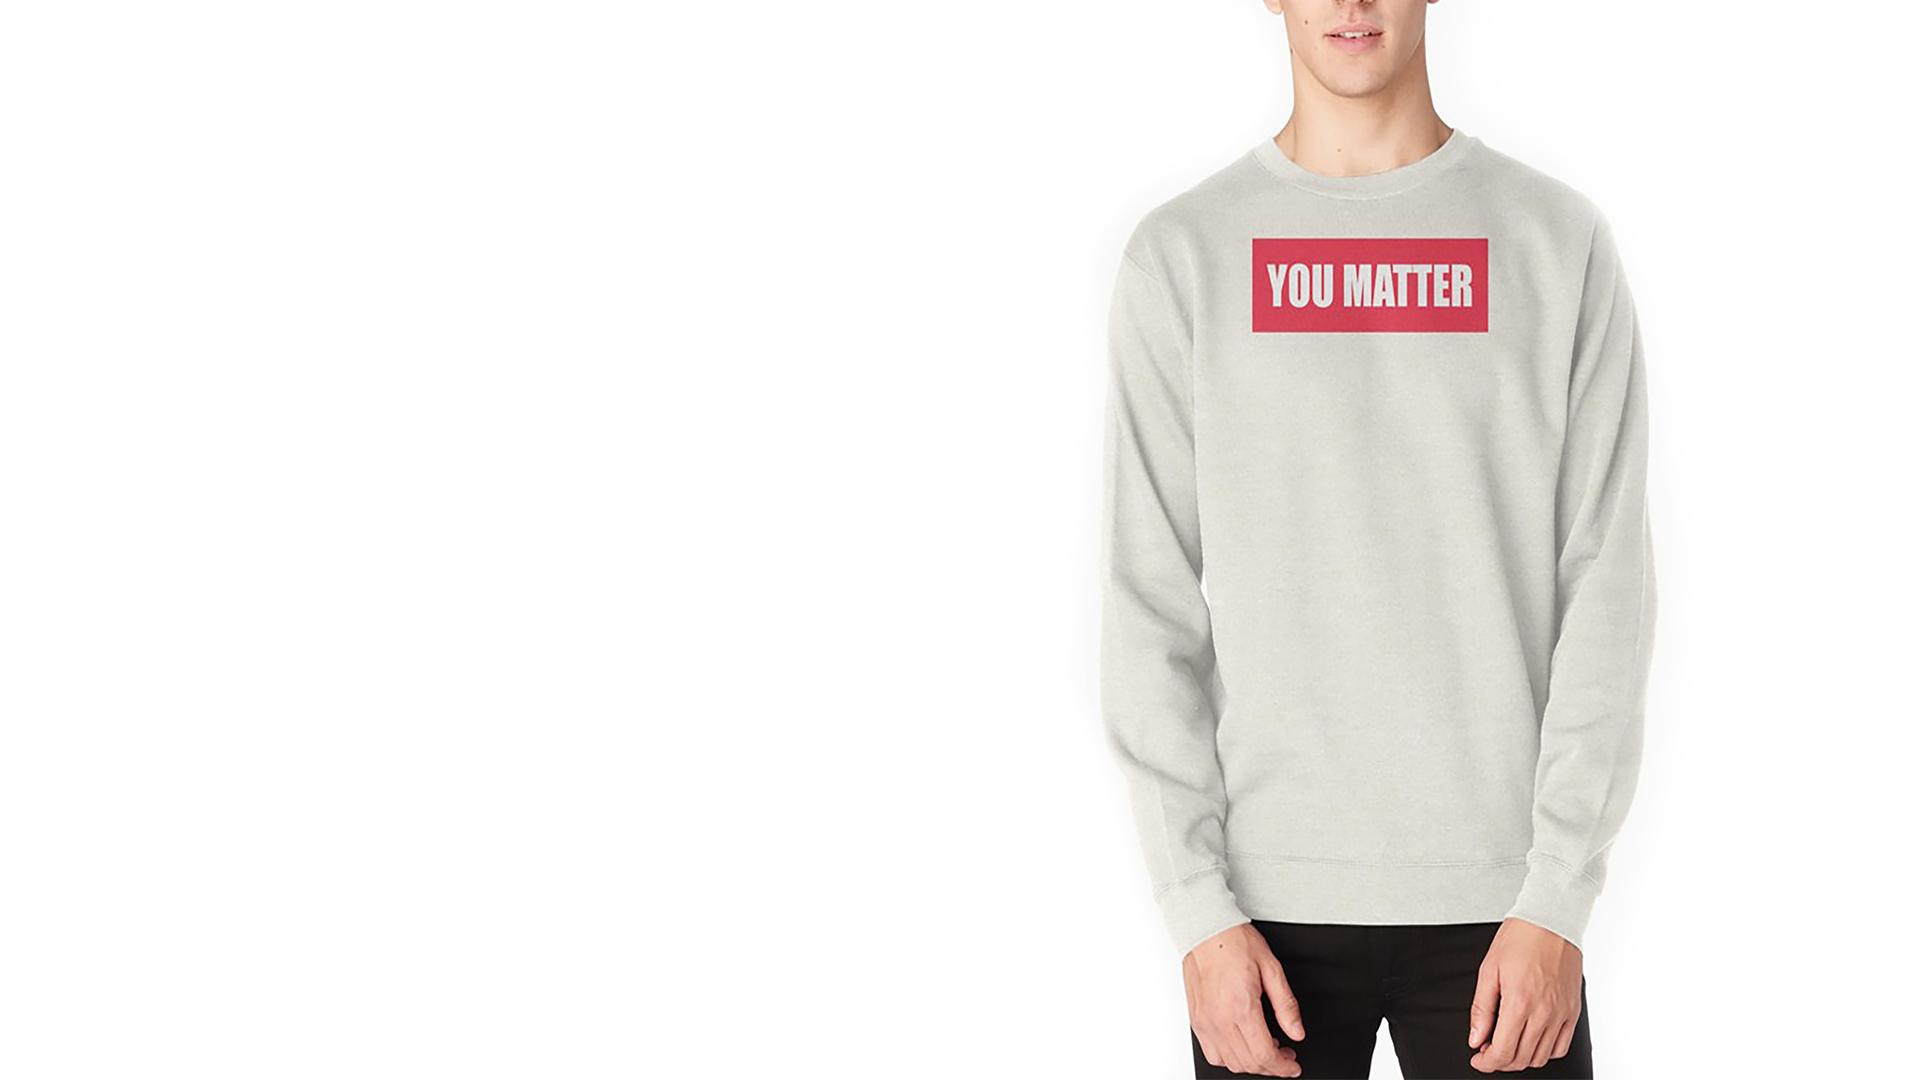 You Matter Sweatshirt - 5 After Midnight - Up In Here